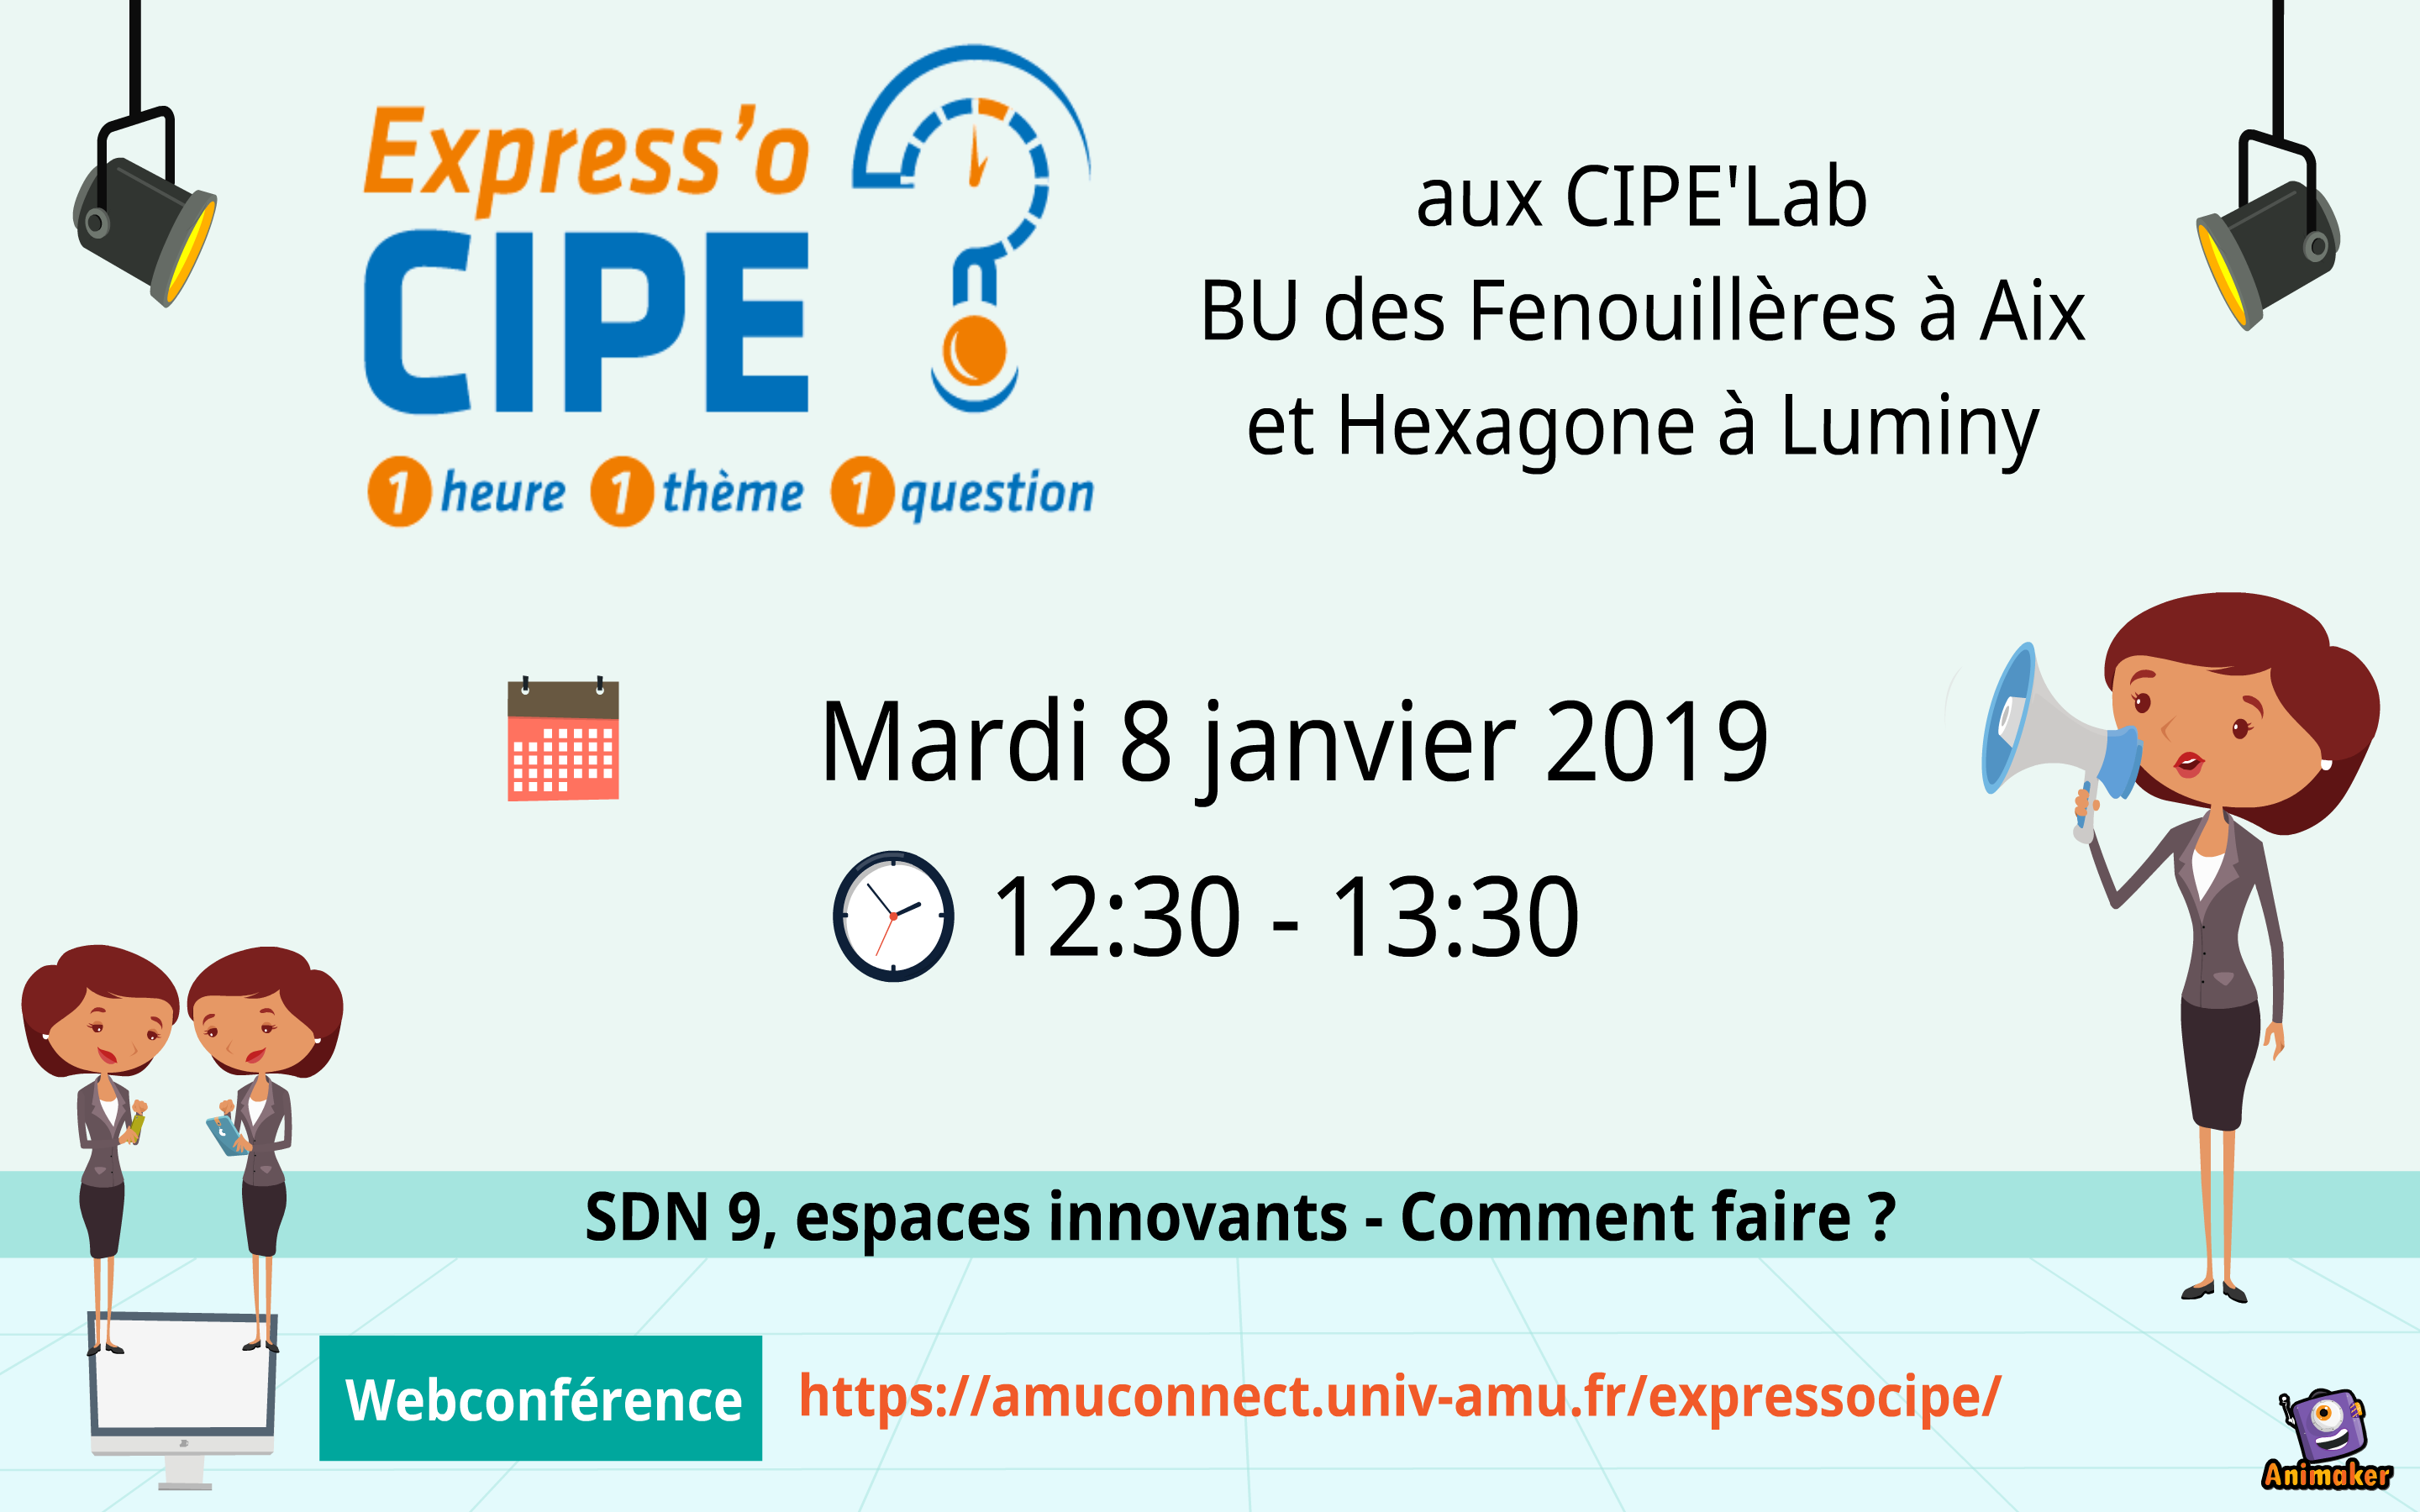 Express'o CIPE #005 (teaser) - Espaces innovants, SDN 9 : comment faire ?